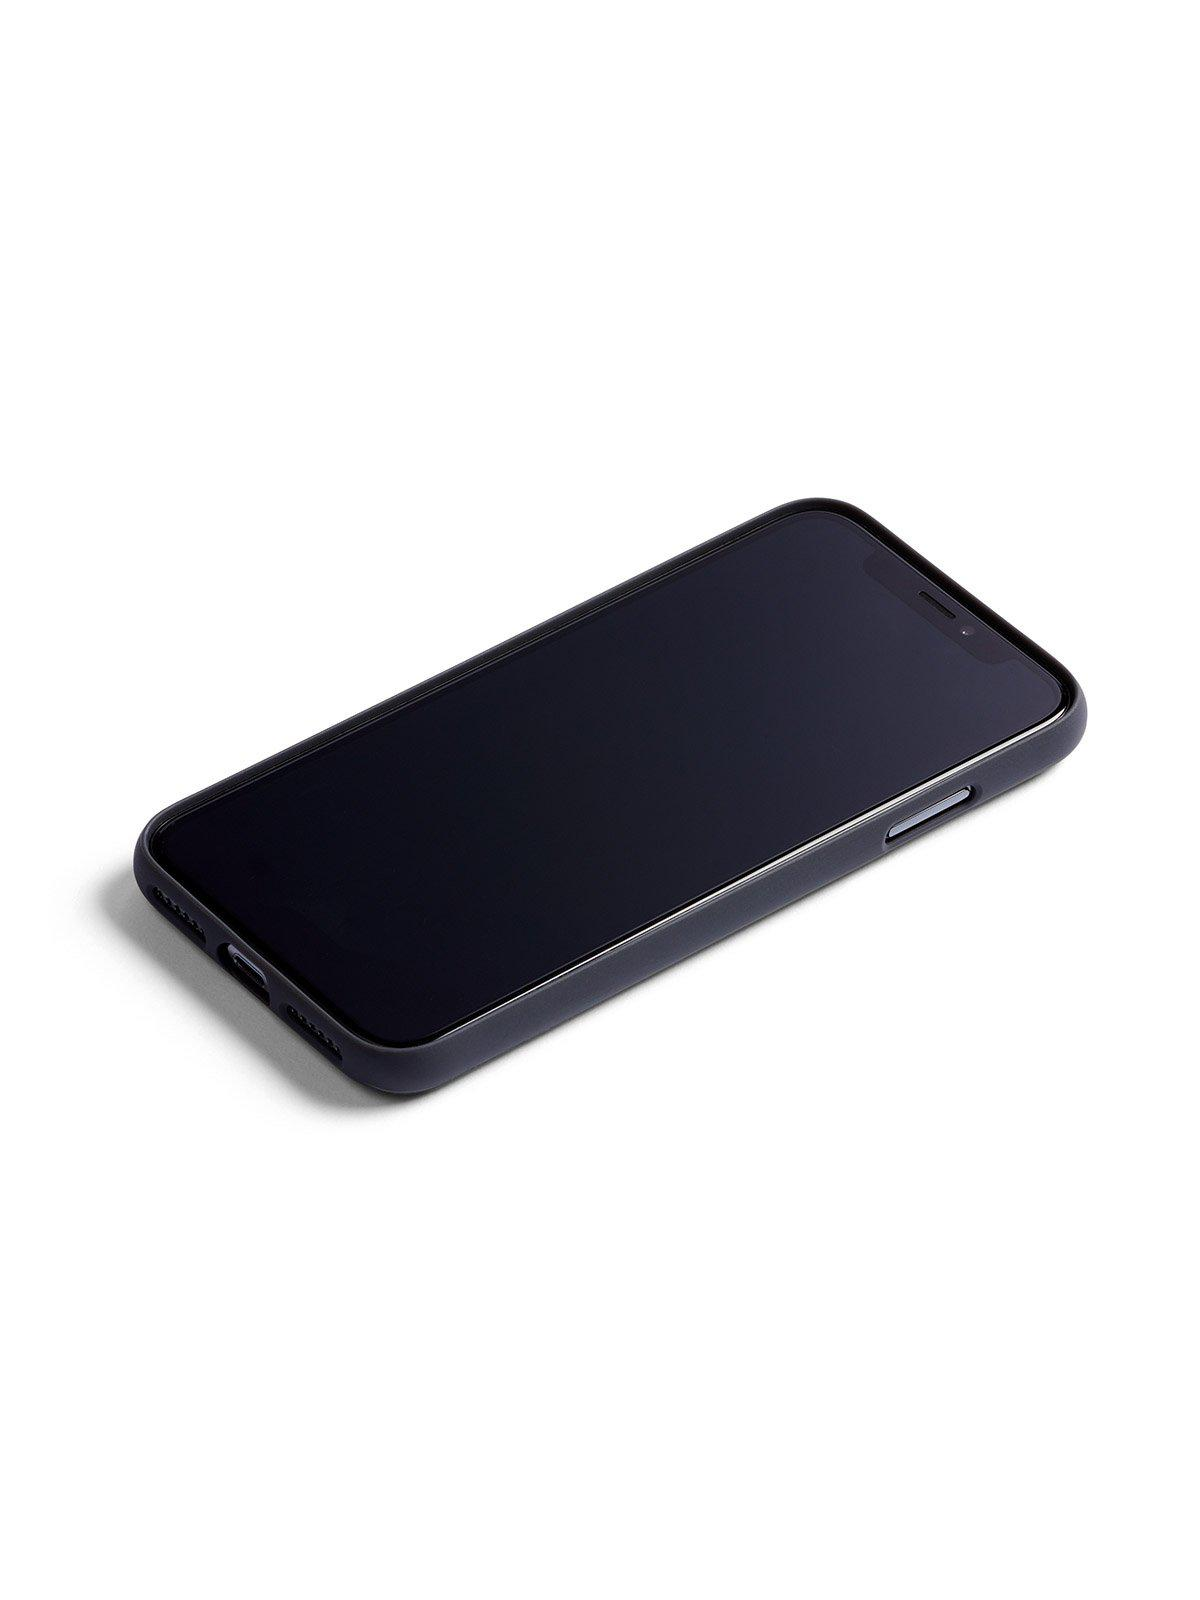 Bellroy Phone Case 0 Card iPhone XS Max Graphite - MORE by Morello Indonesia